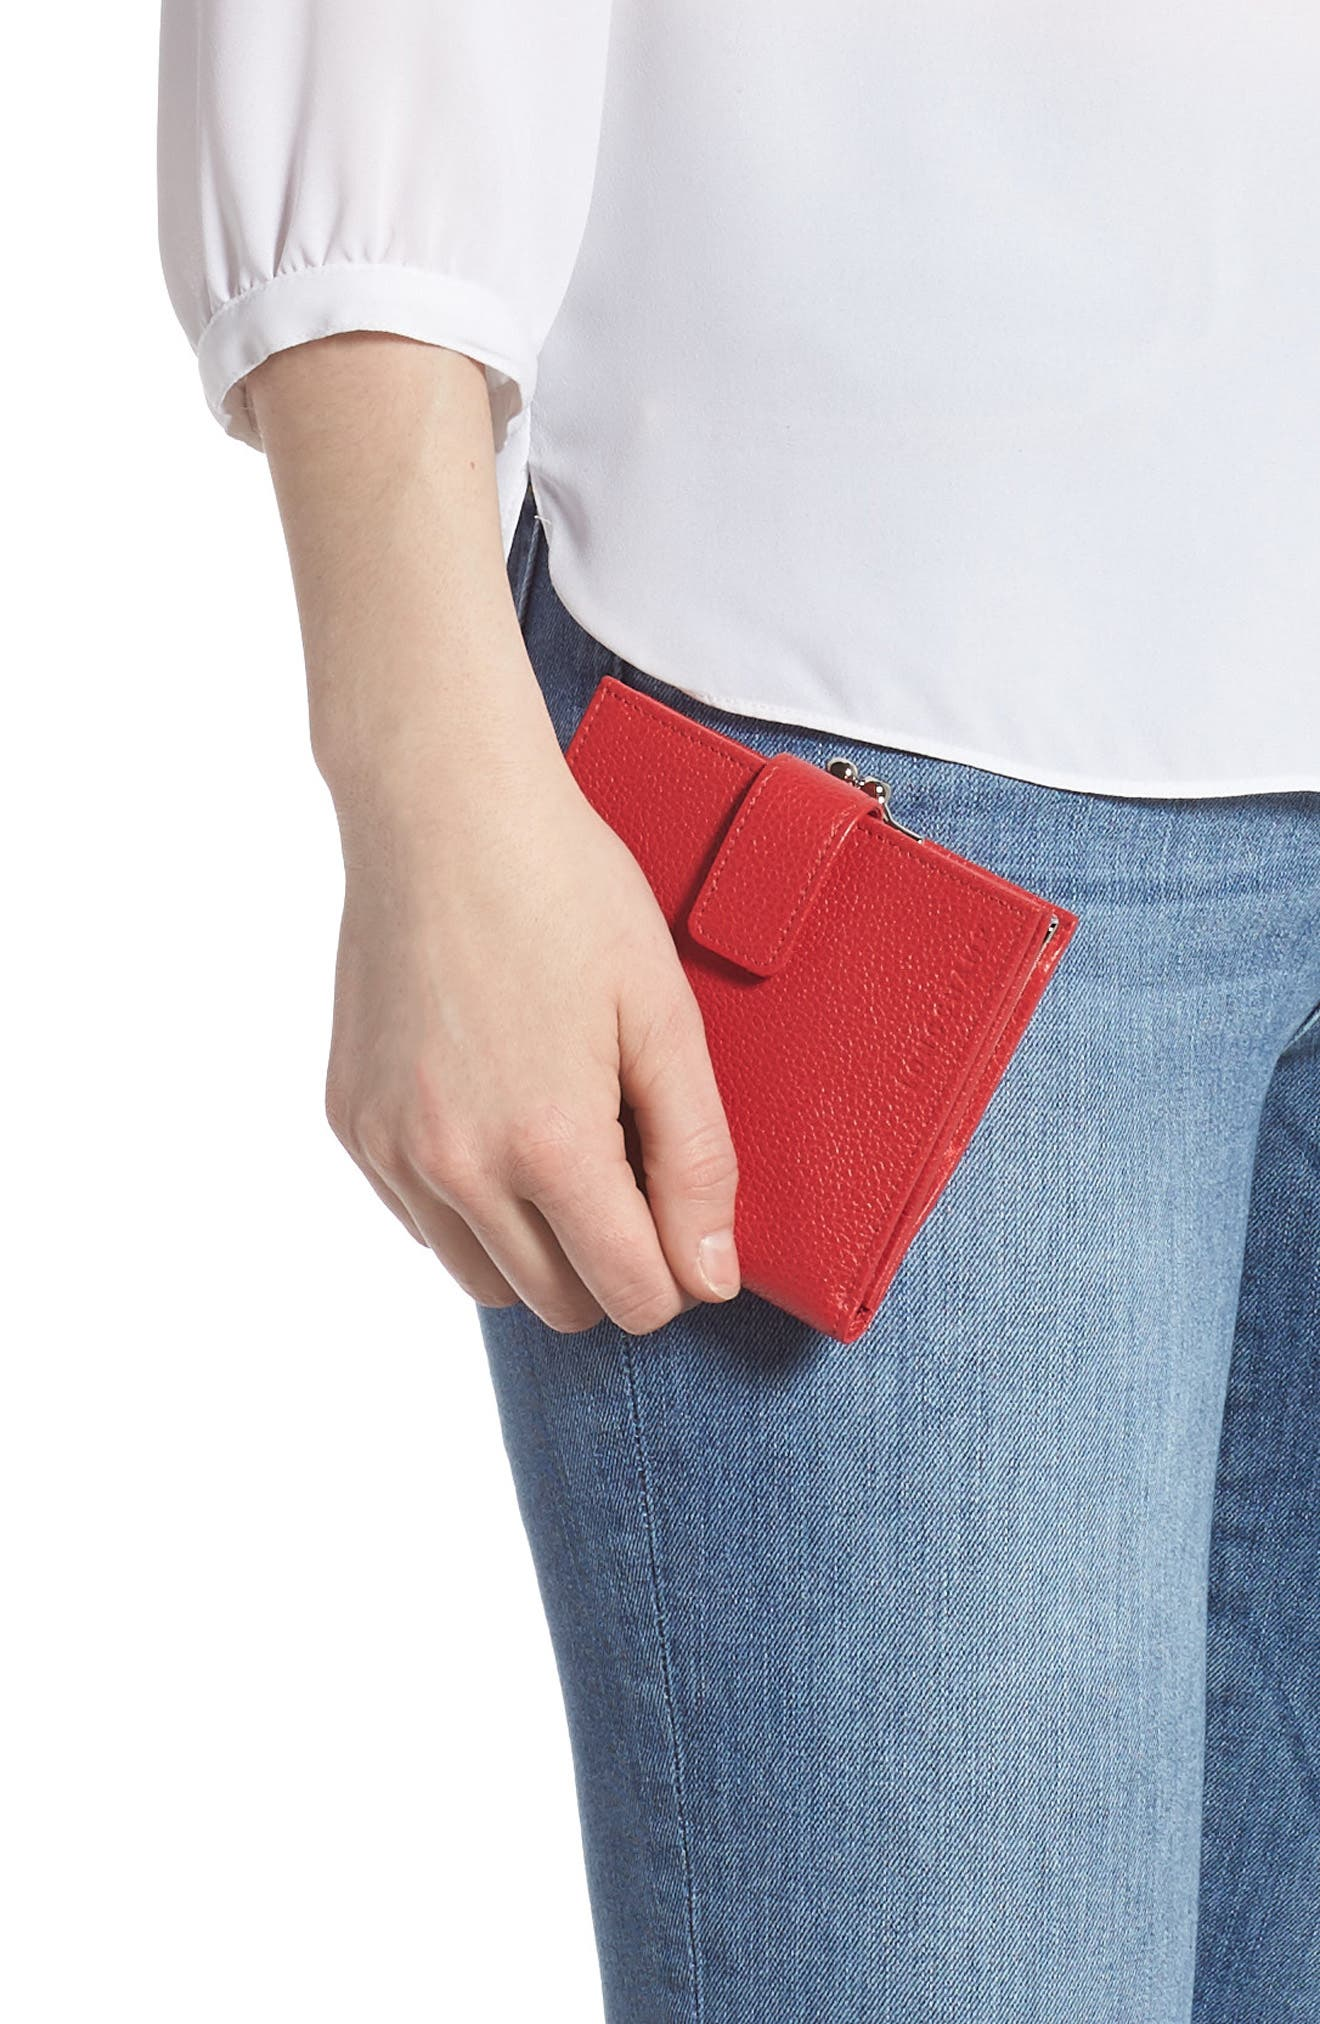 LONGCHAMP, 'Le Foulonne' Pebbled Leather Wallet, Alternate thumbnail 3, color, RED ORANGE